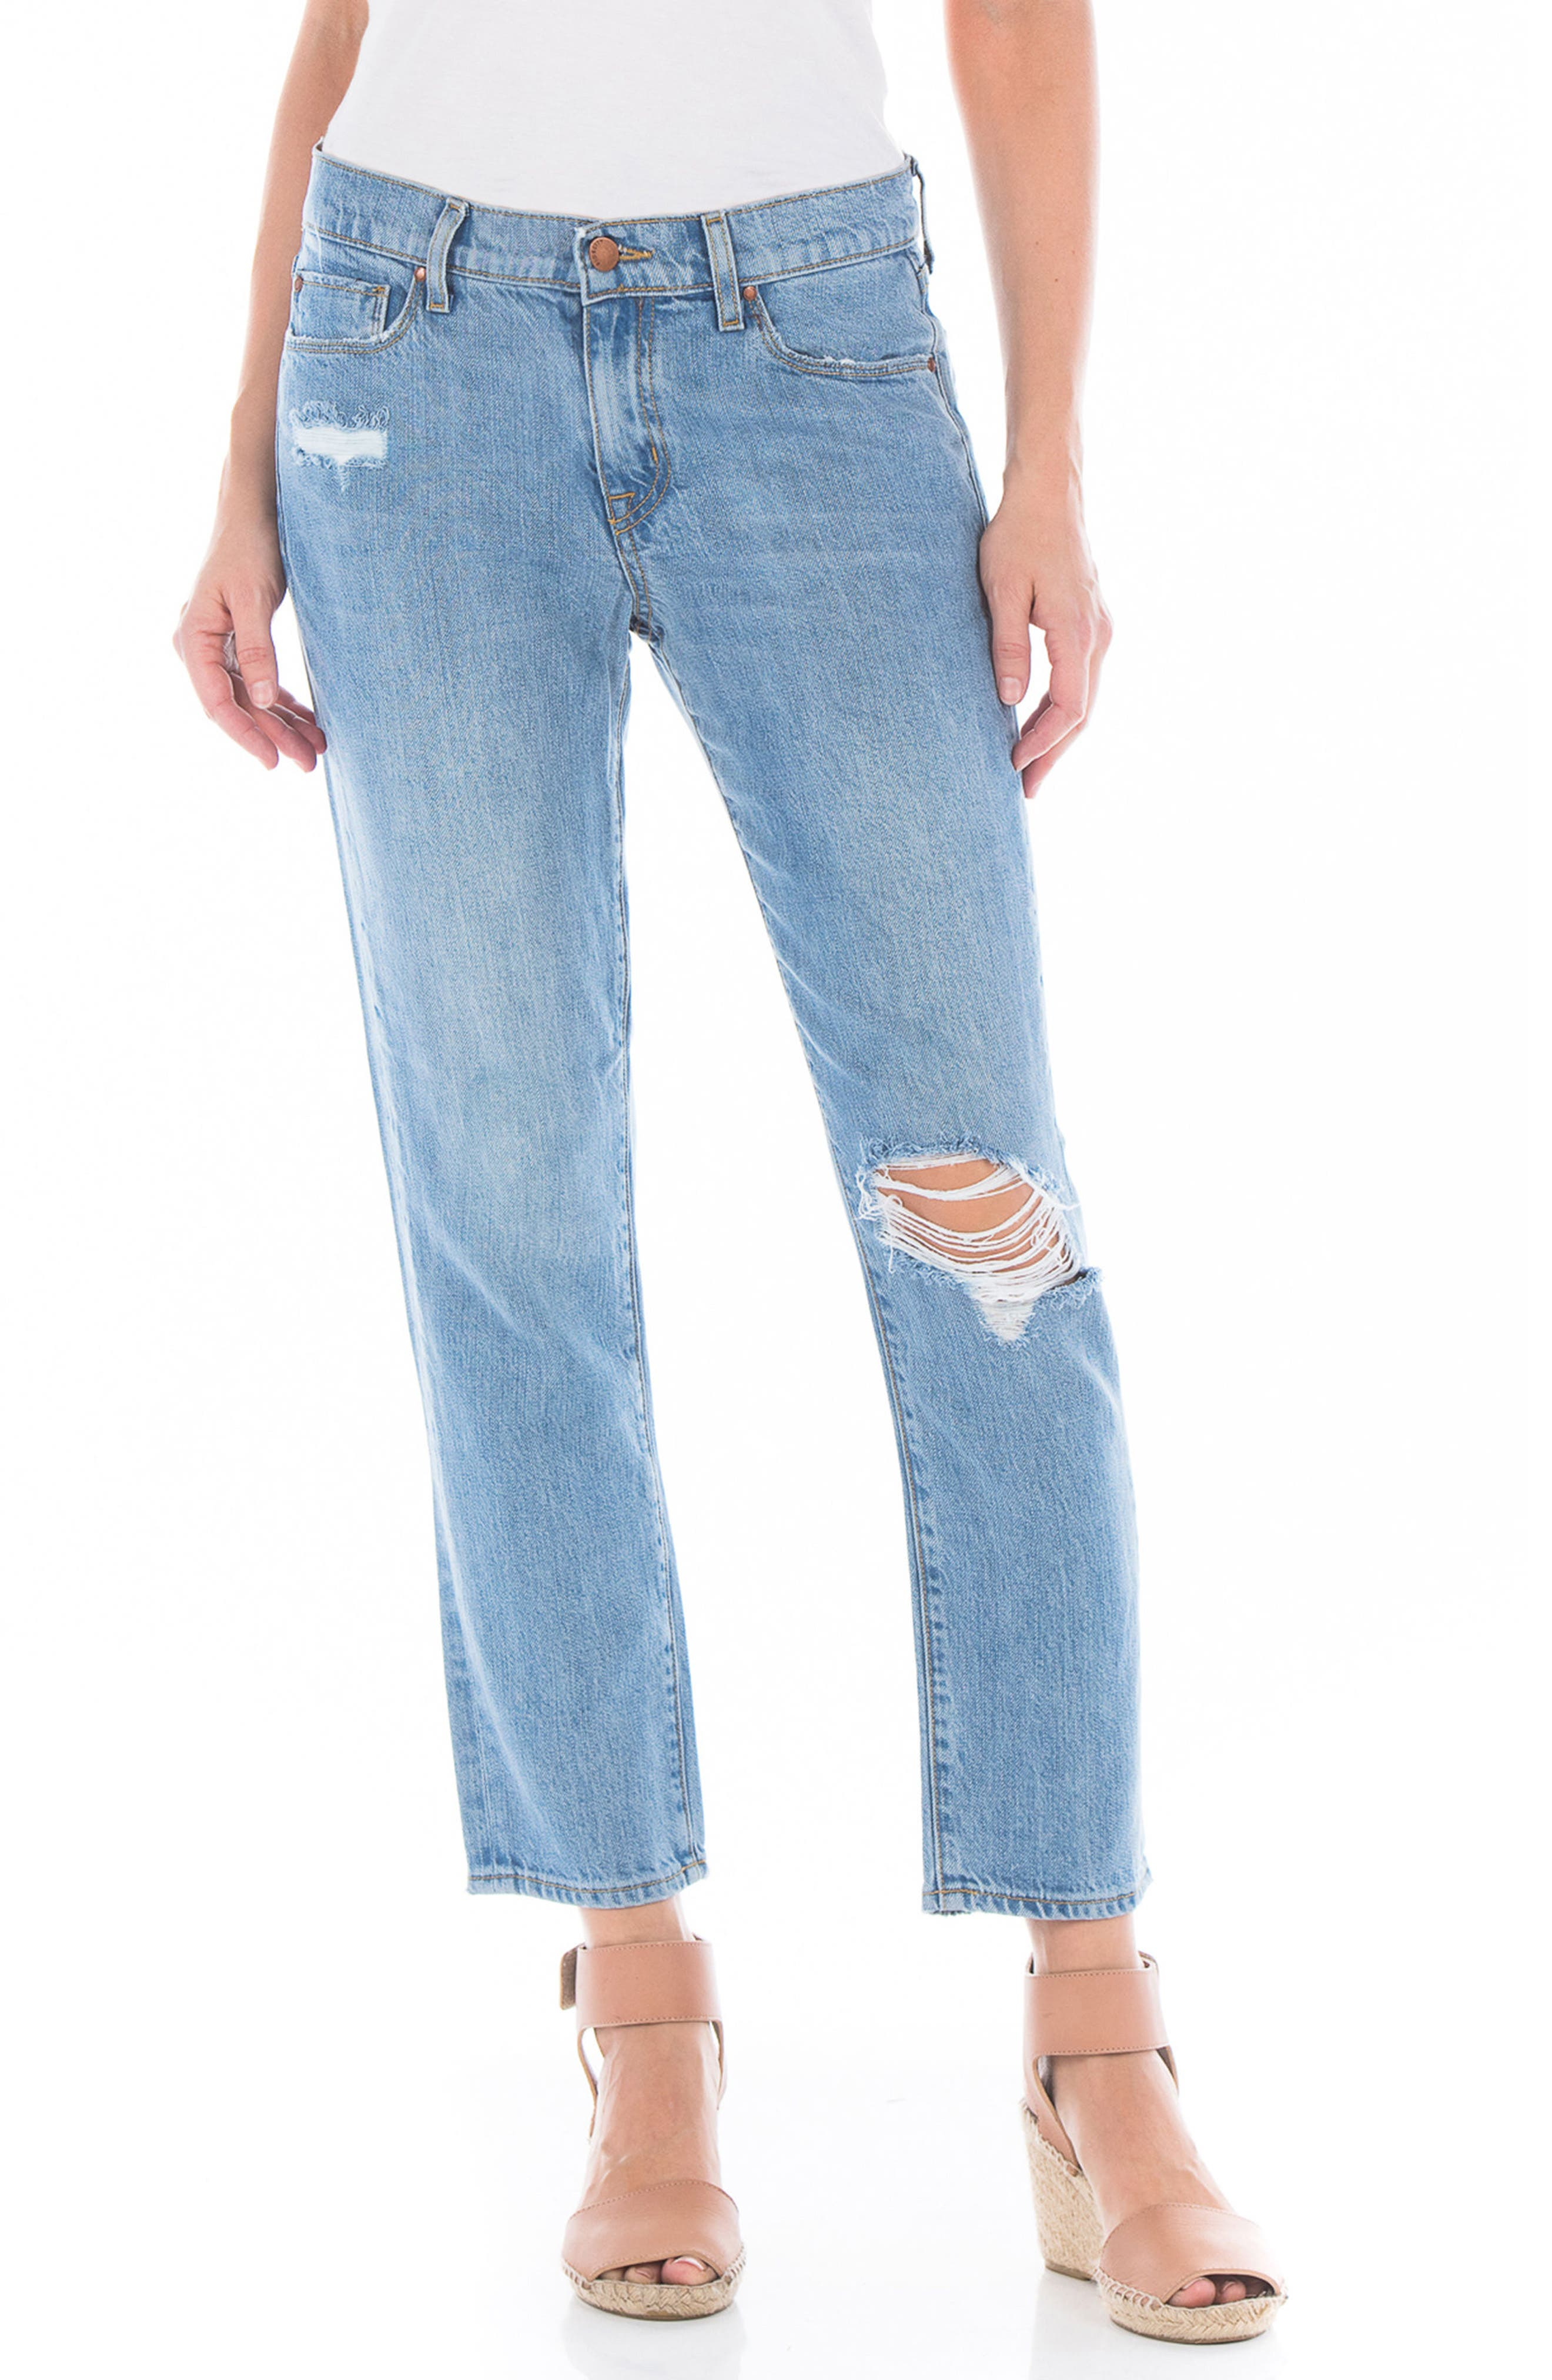 Axl Ripped Crop Girlfriend Jeans,                             Main thumbnail 1, color,                             400